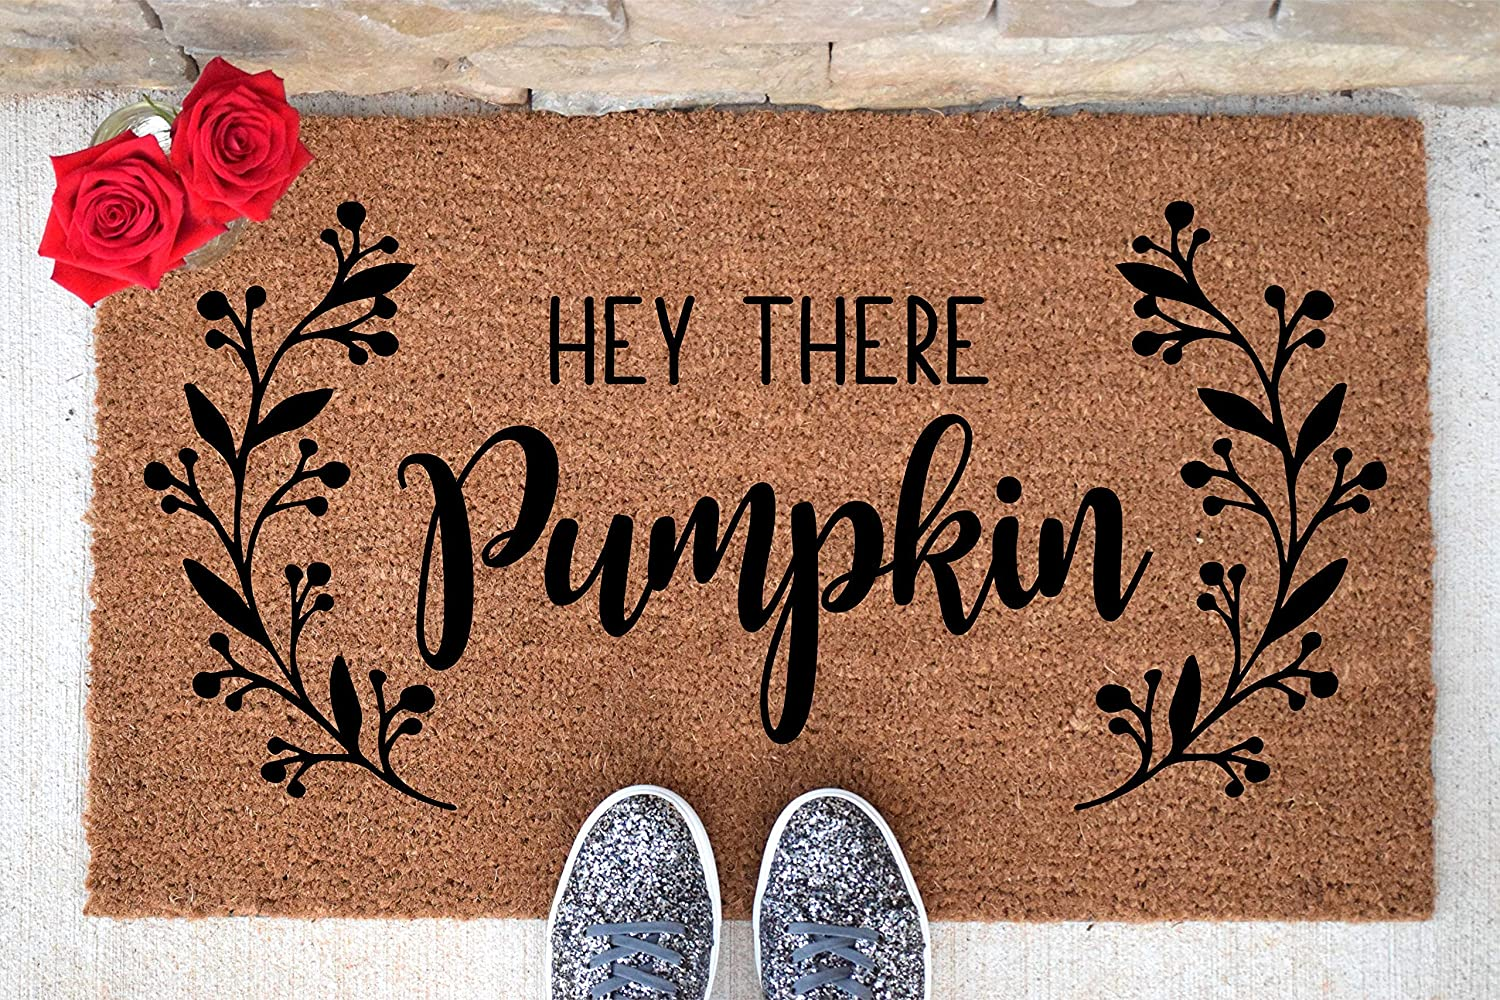 Hey There Pumpkin Doormat - Welcome Mat - Welcome Doormat - Cute Doormat - Funny Doormat - Pumpkin Doormat - Thanksgiving Doormat